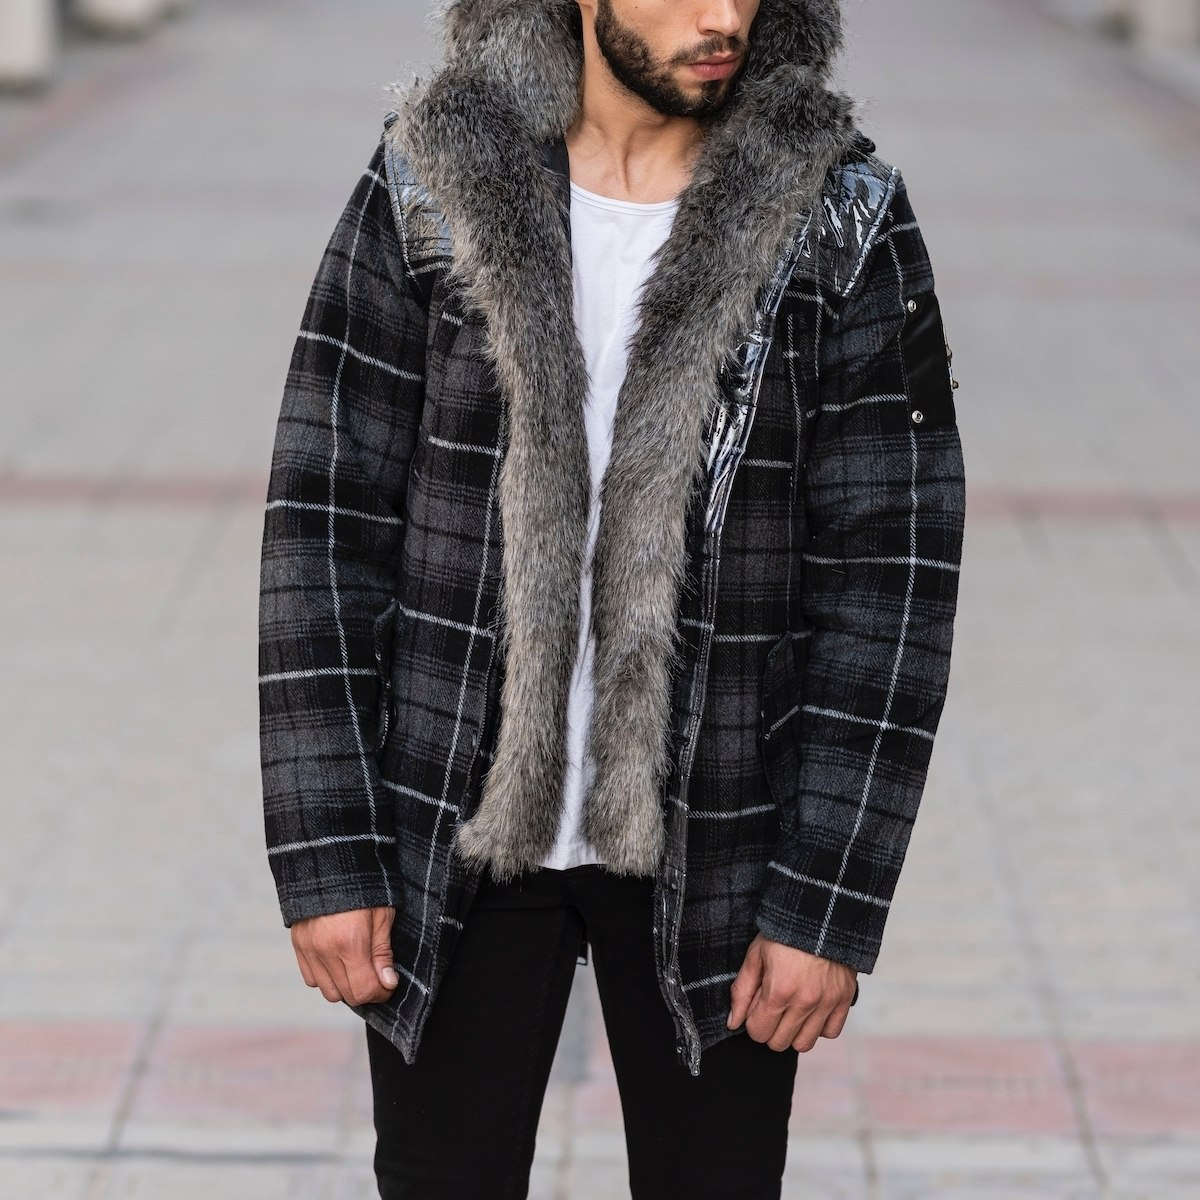 Furry Plaid Jacket With Hood